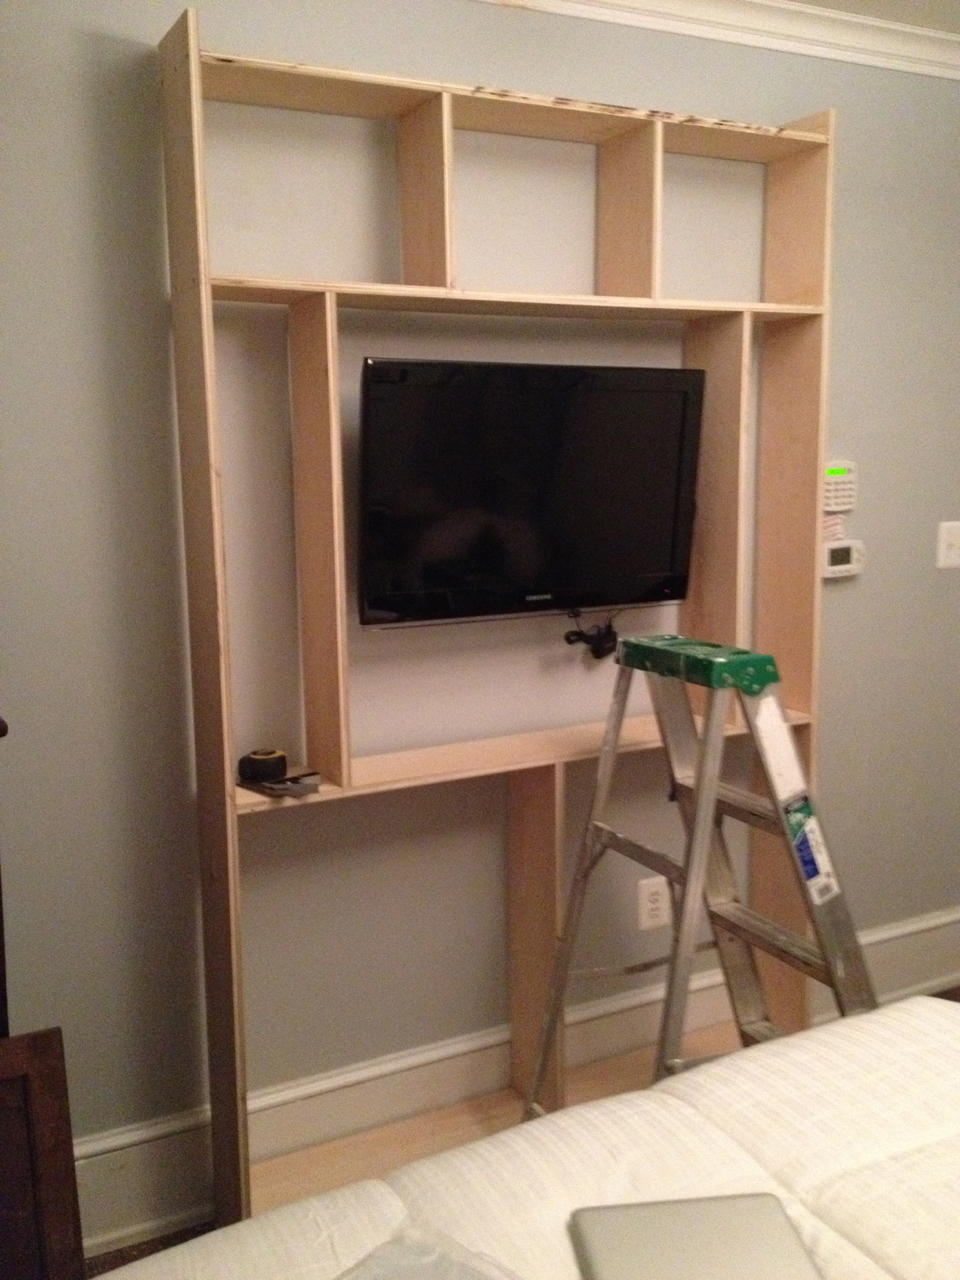 Start of the built-in.